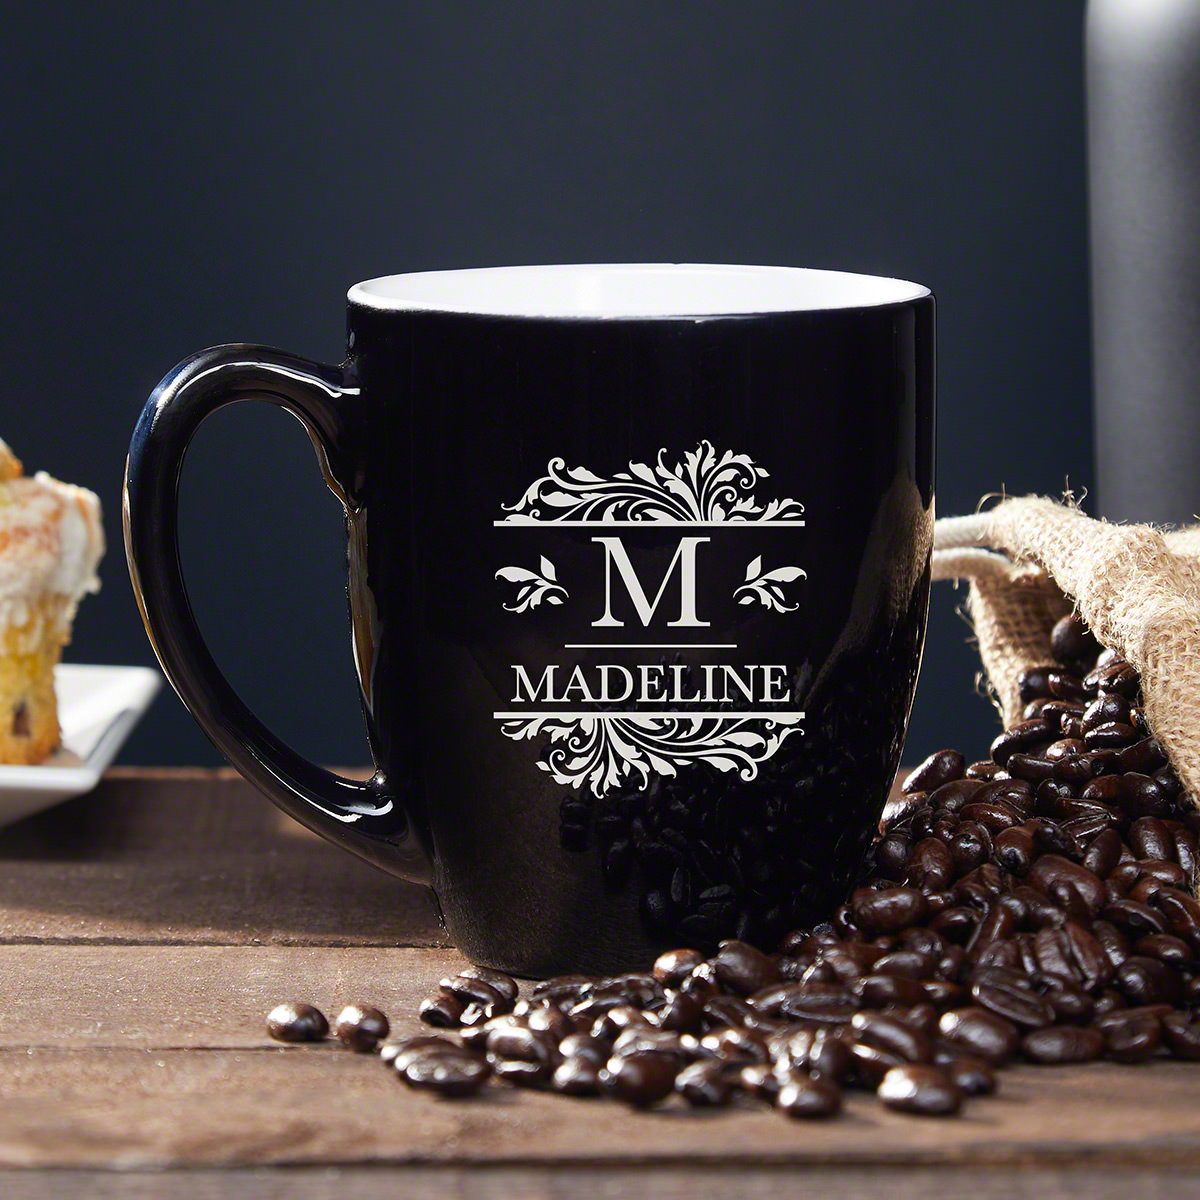 When it comes to drinking your morning cup of joe, having a great mug is important. This beautiful custom coffee mug is the best mug out there! It is engraved with an initial and a name, making it a lovely mug you'll want to use all the time. Crafted fr #mug